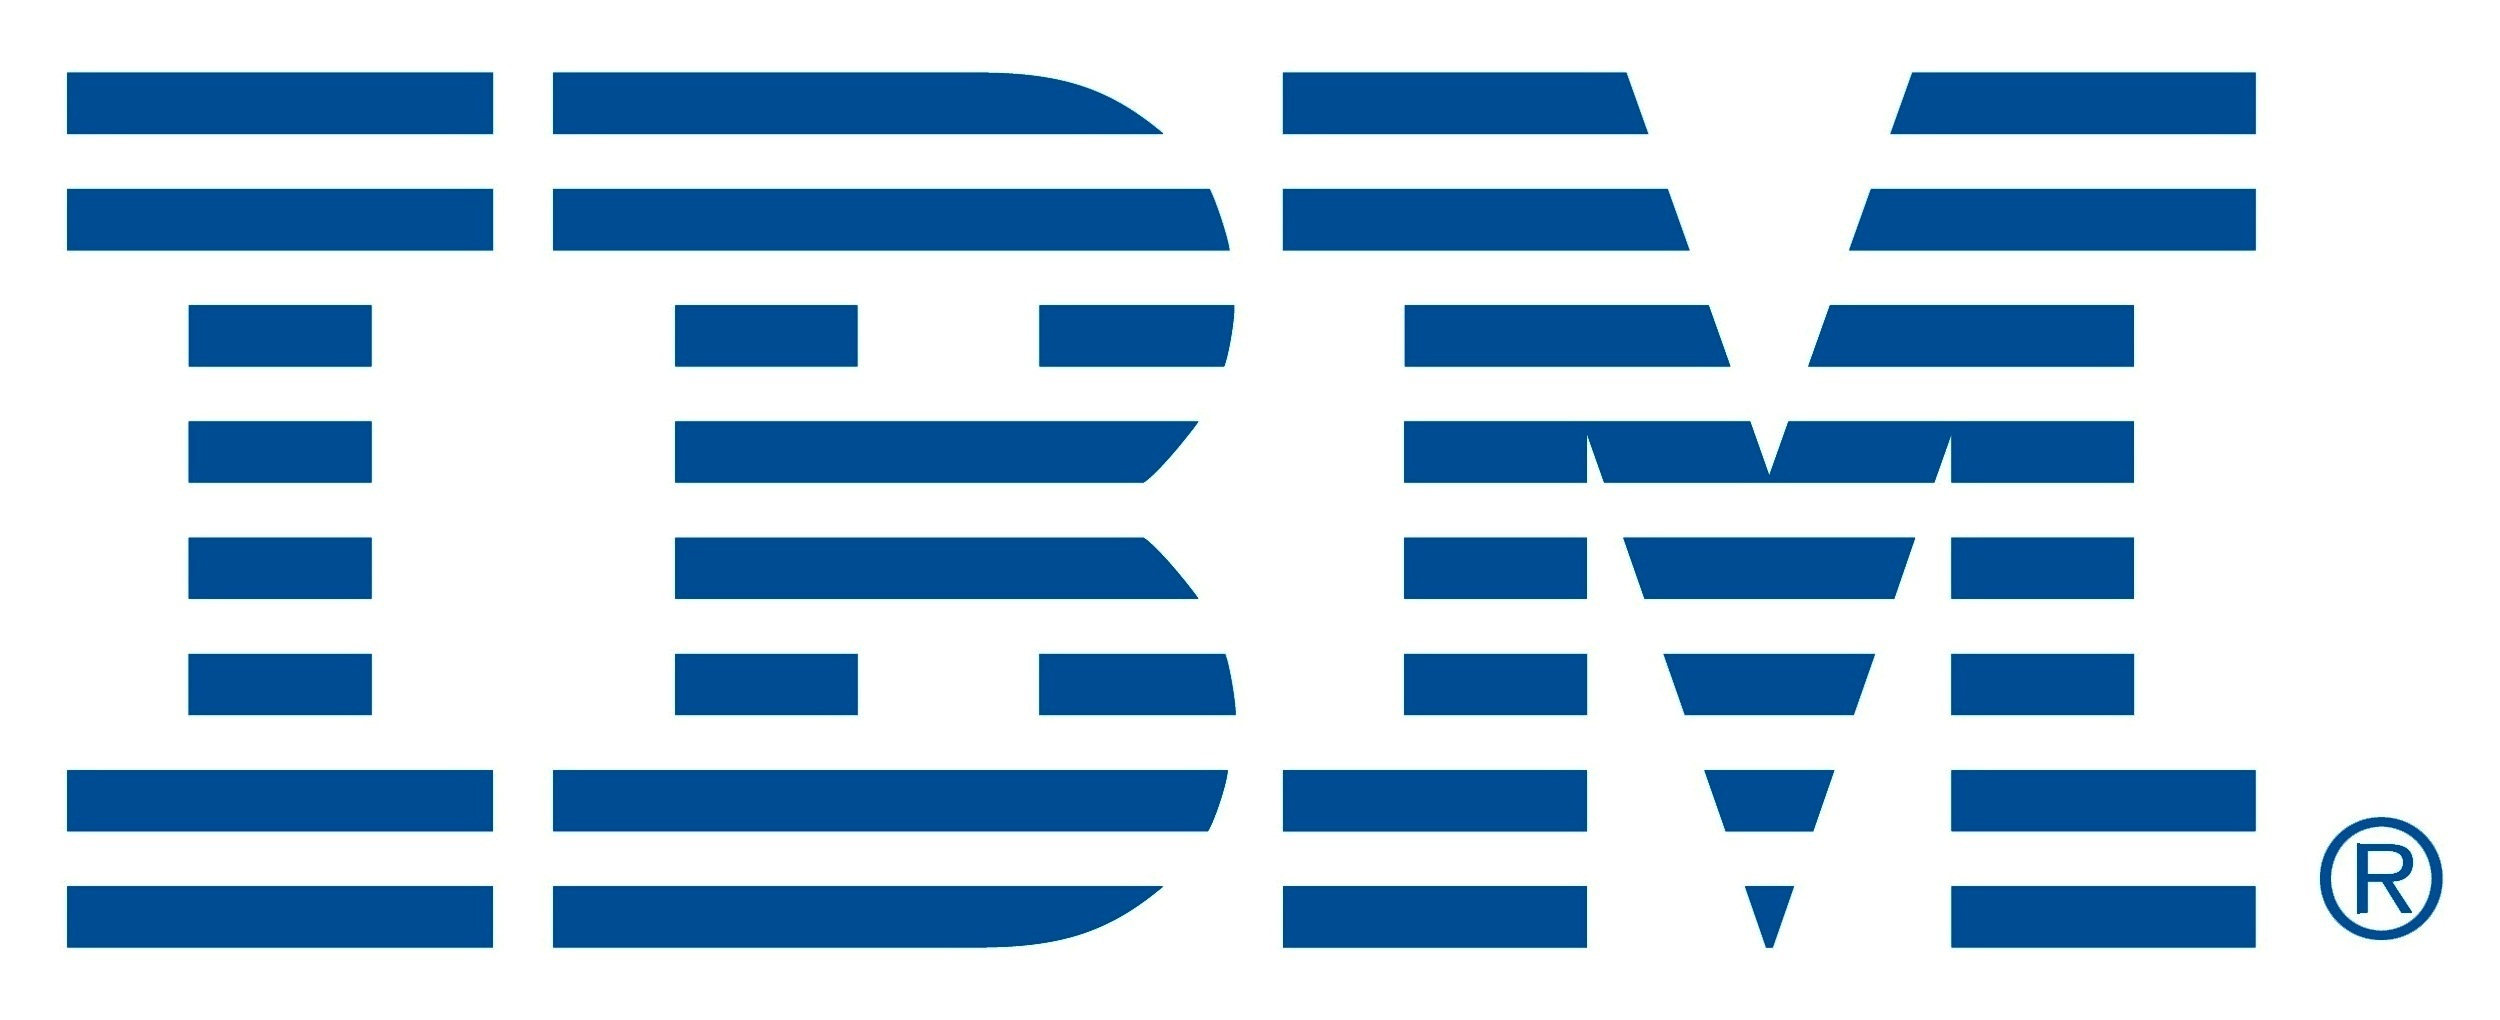 IBM - Enabling Business Transformation